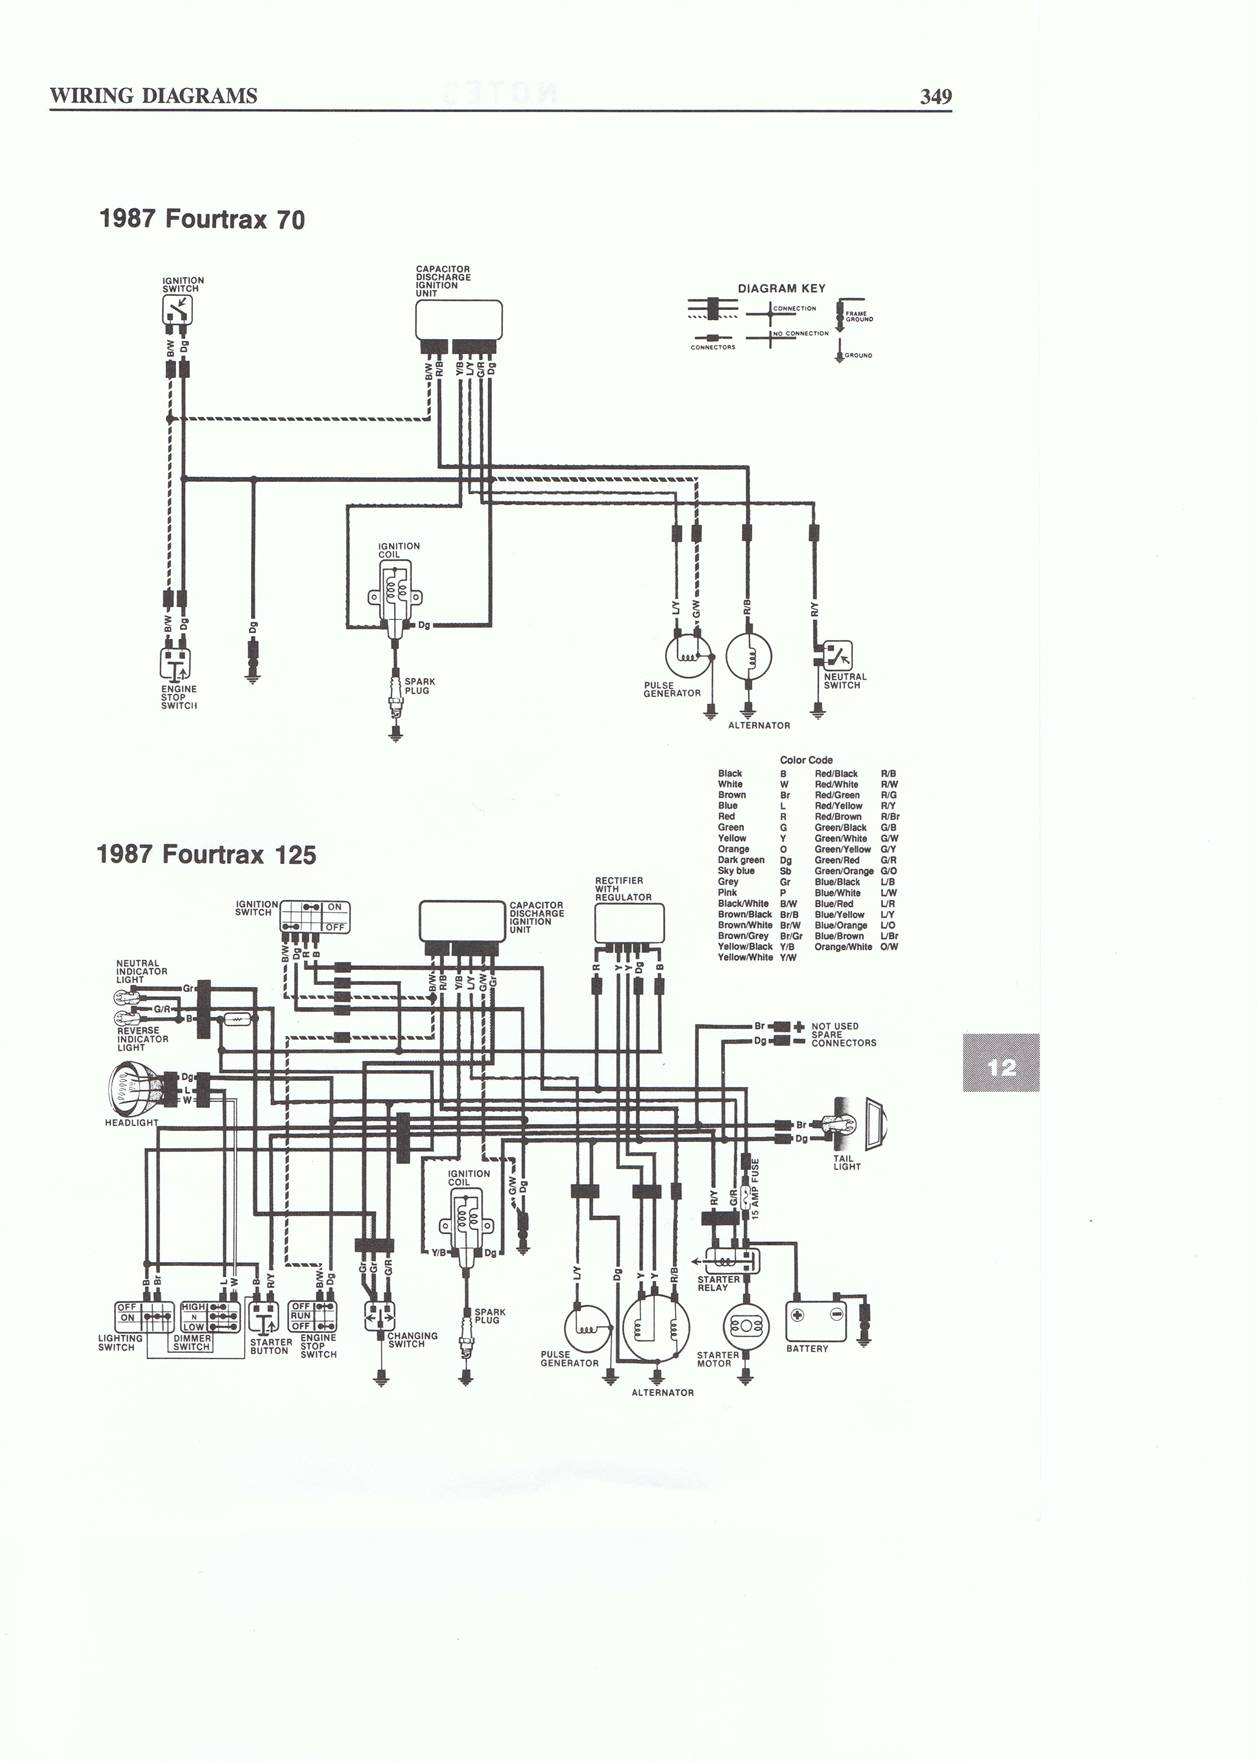 gy6 engine wiring diagram?t=1398725710 gy6 engine wiring diagram engine wiring diagram at crackthecode.co